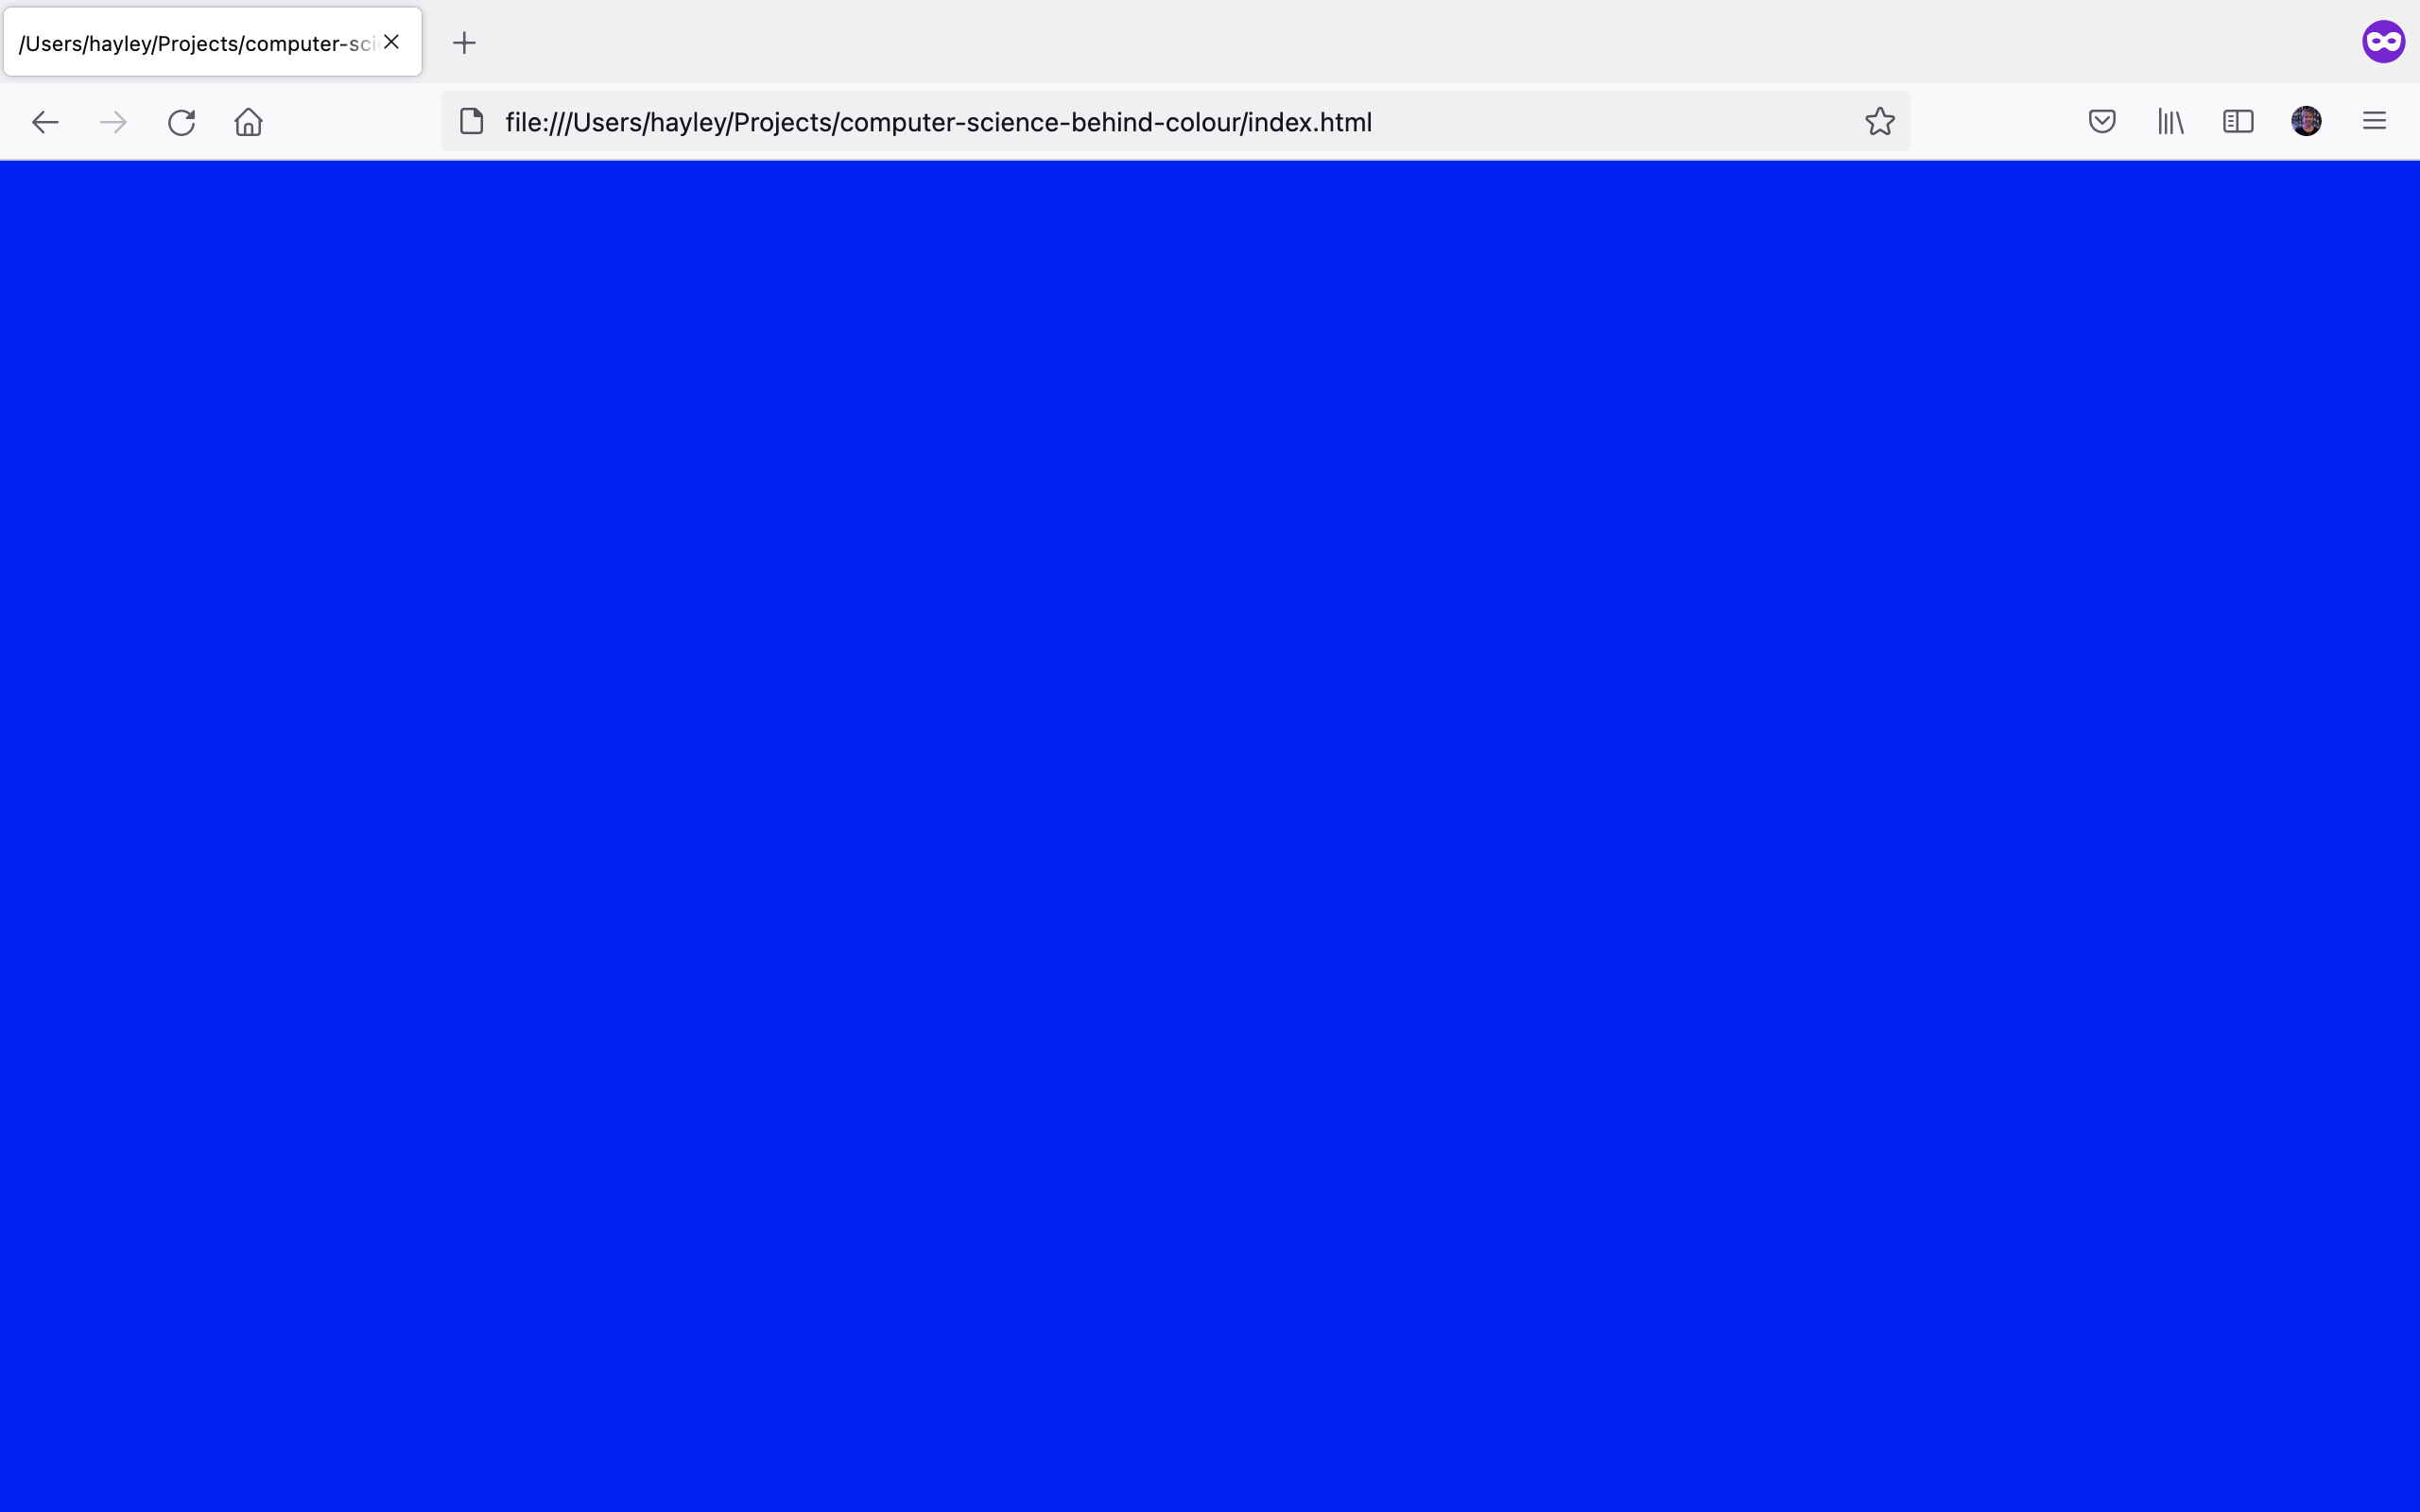 Empty webpage with blue background.